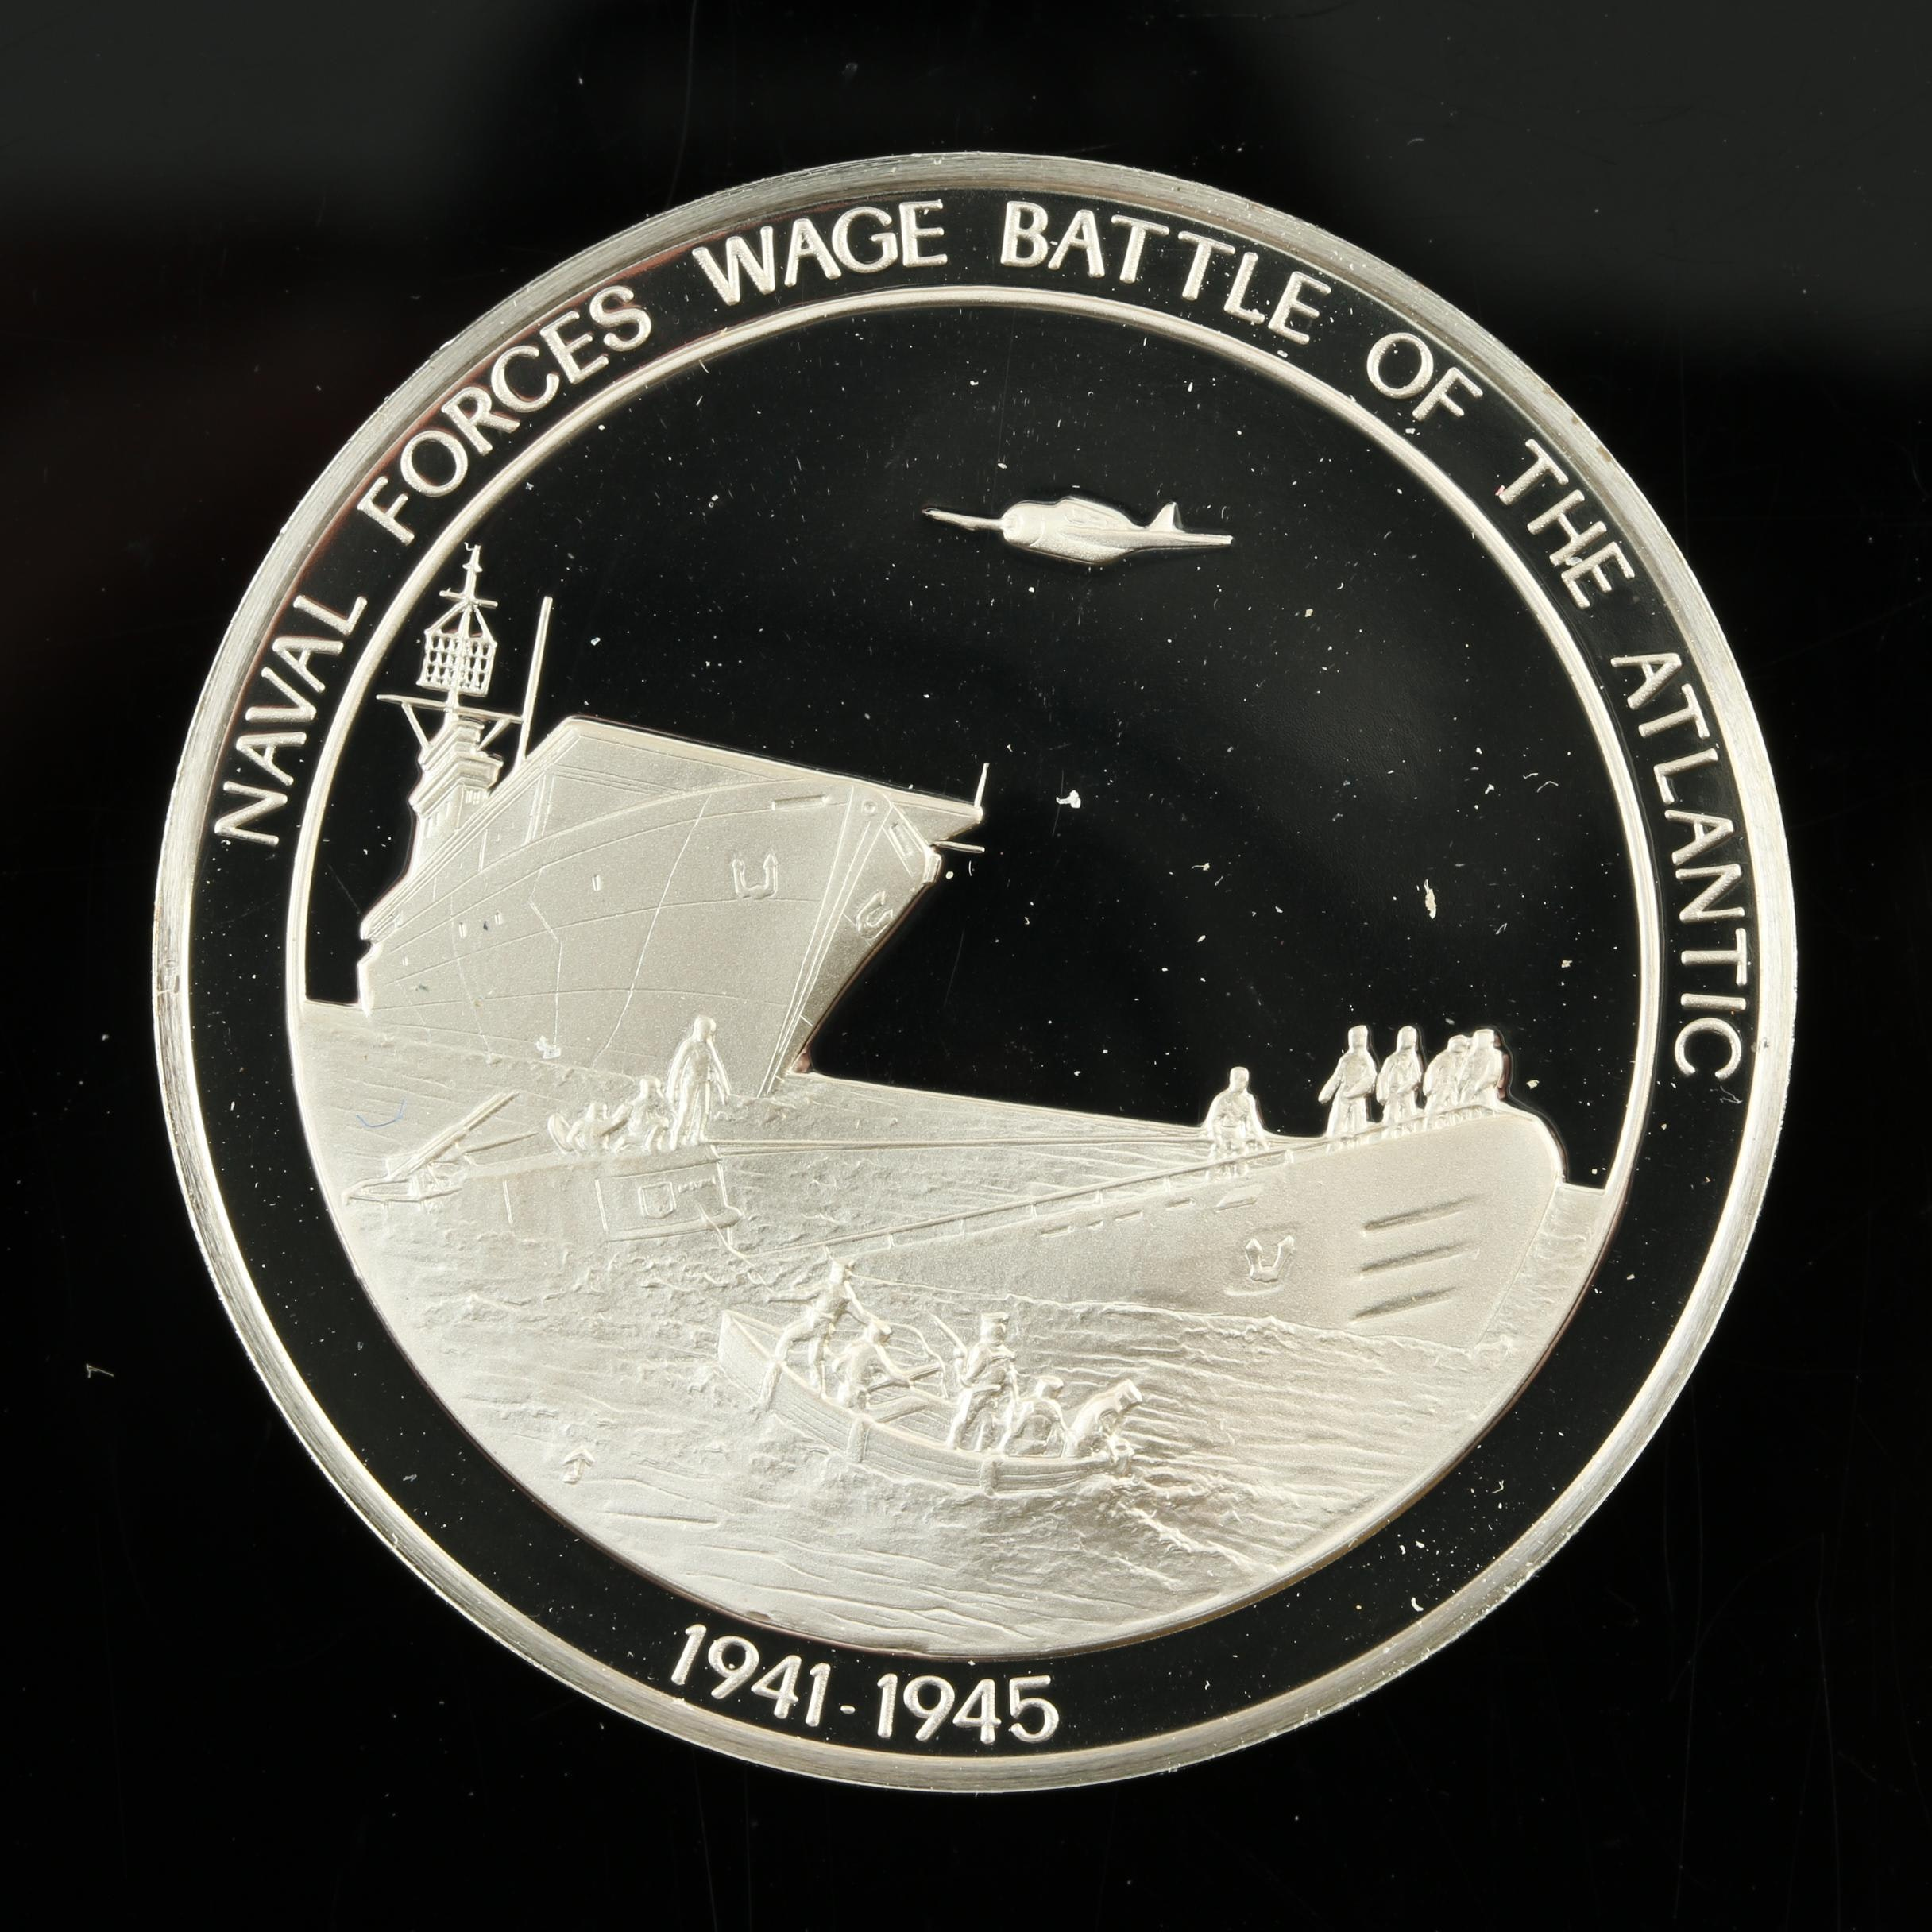 Sterling Silver Medal Commemorating the Naval Forces Battles of the Atlantic